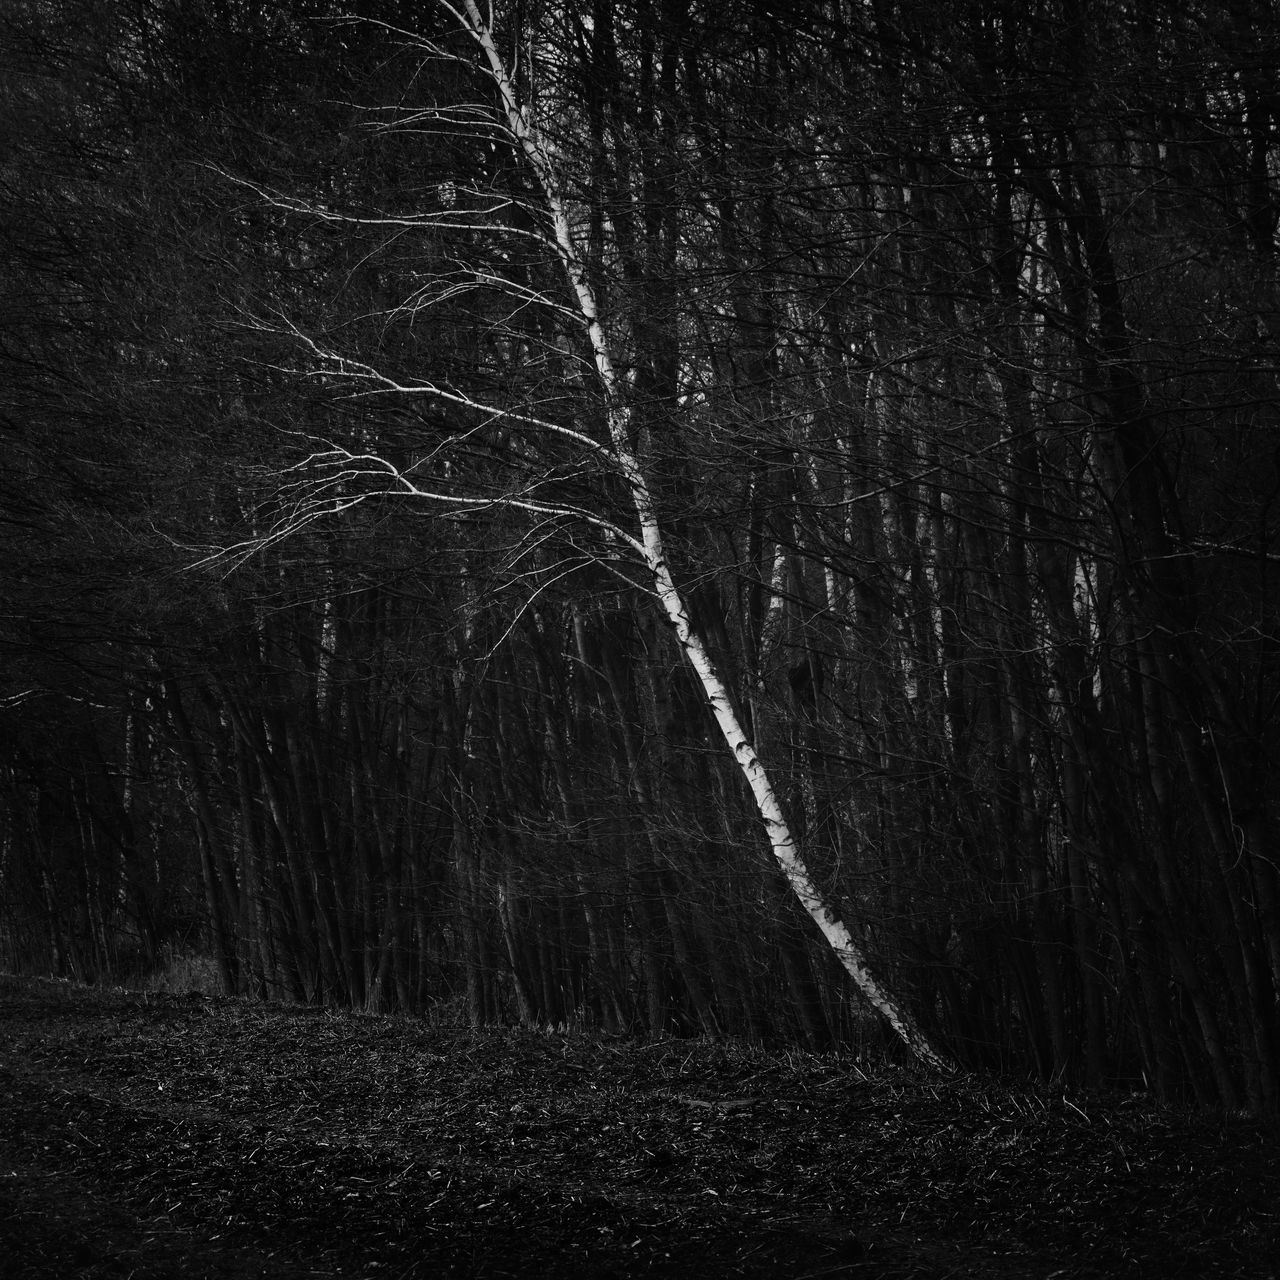 single birch tree in a forest Bare Tree Beauty In Nature Beauty In Nature Birch Birch Tree Black And White Brandenburg Contrast Deep Shadows Forest Growth Havelland Low Angle View Monochrome Nature Nature Night No People Outdoors Philipp Dase Sky Tree